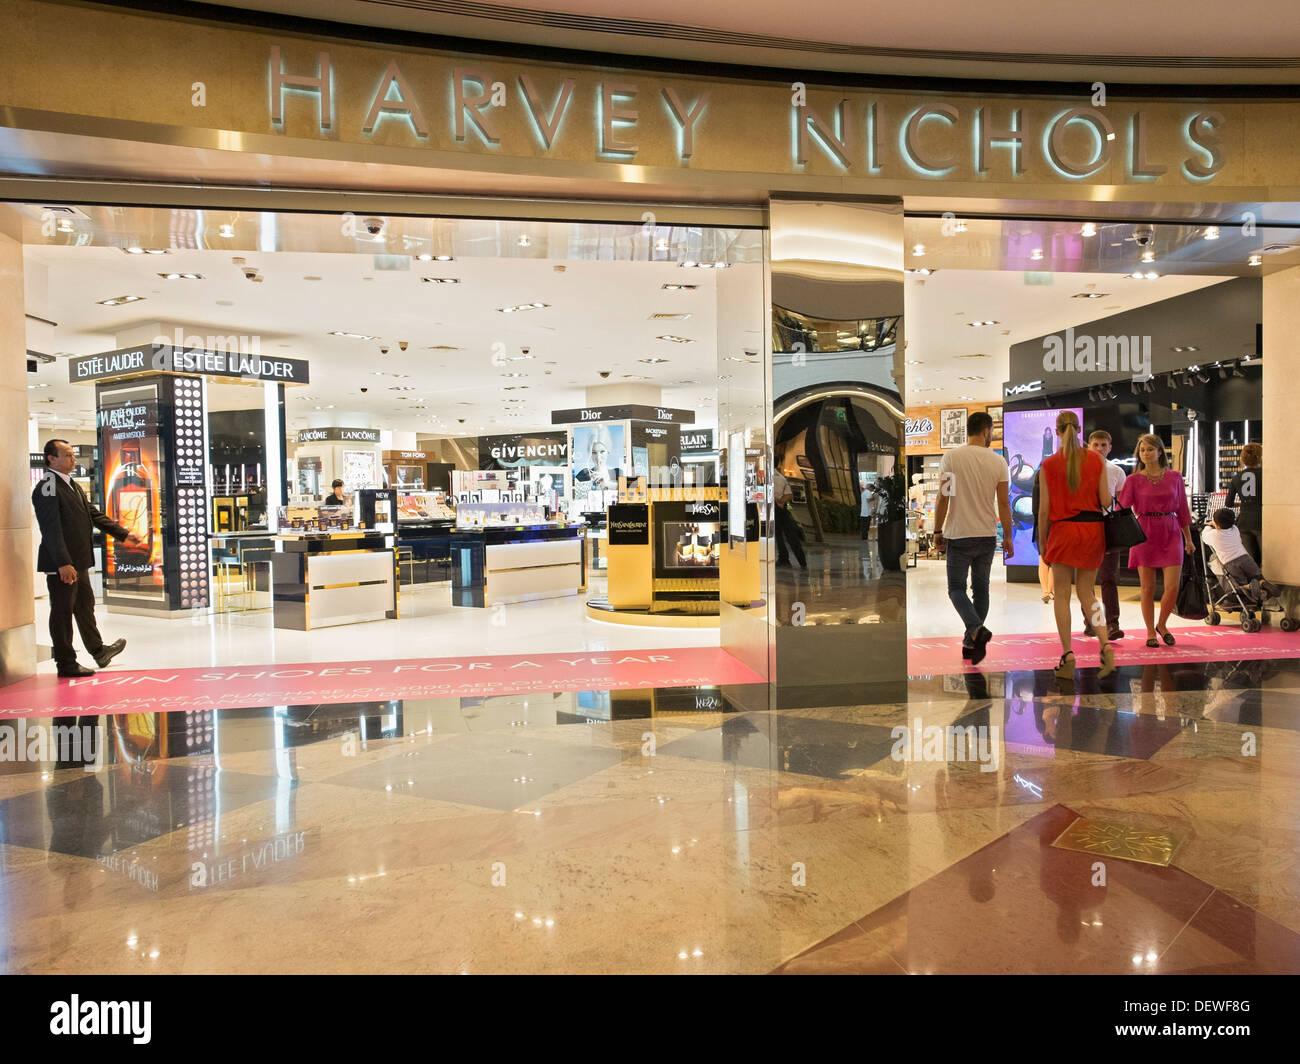 harvey nichols store at mall of the emirates shopping centre in dubai stock photo royalty free. Black Bedroom Furniture Sets. Home Design Ideas